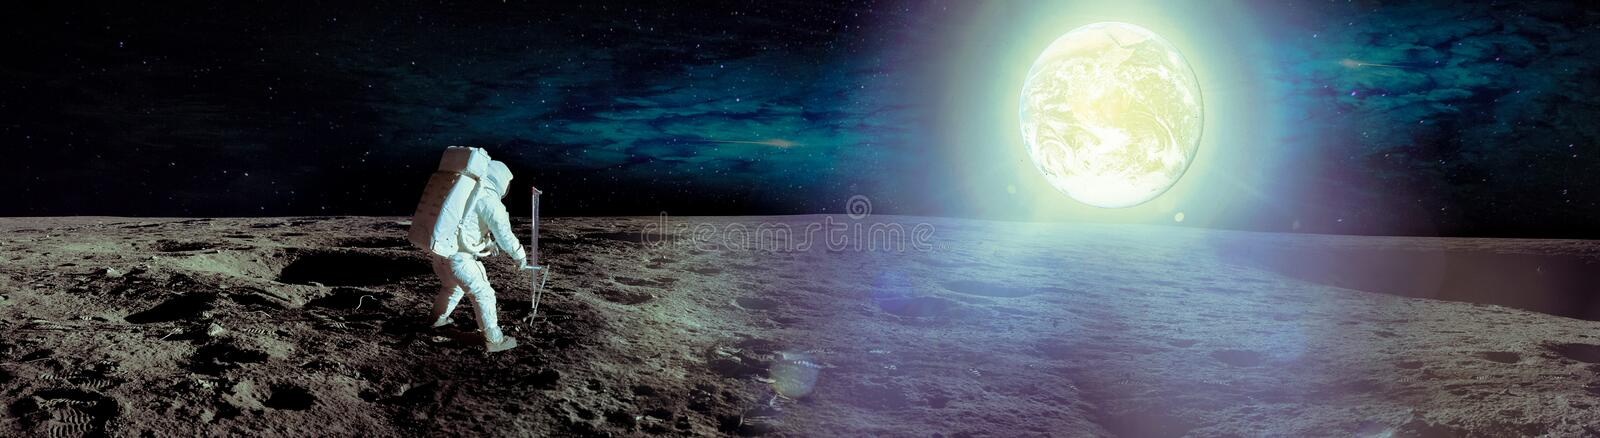 Astronaut landing on moon. Spacewalk on the moon. Panoramic view of the moon surface and the earth planet at light. Elements of this image furnished by NASA stock photos